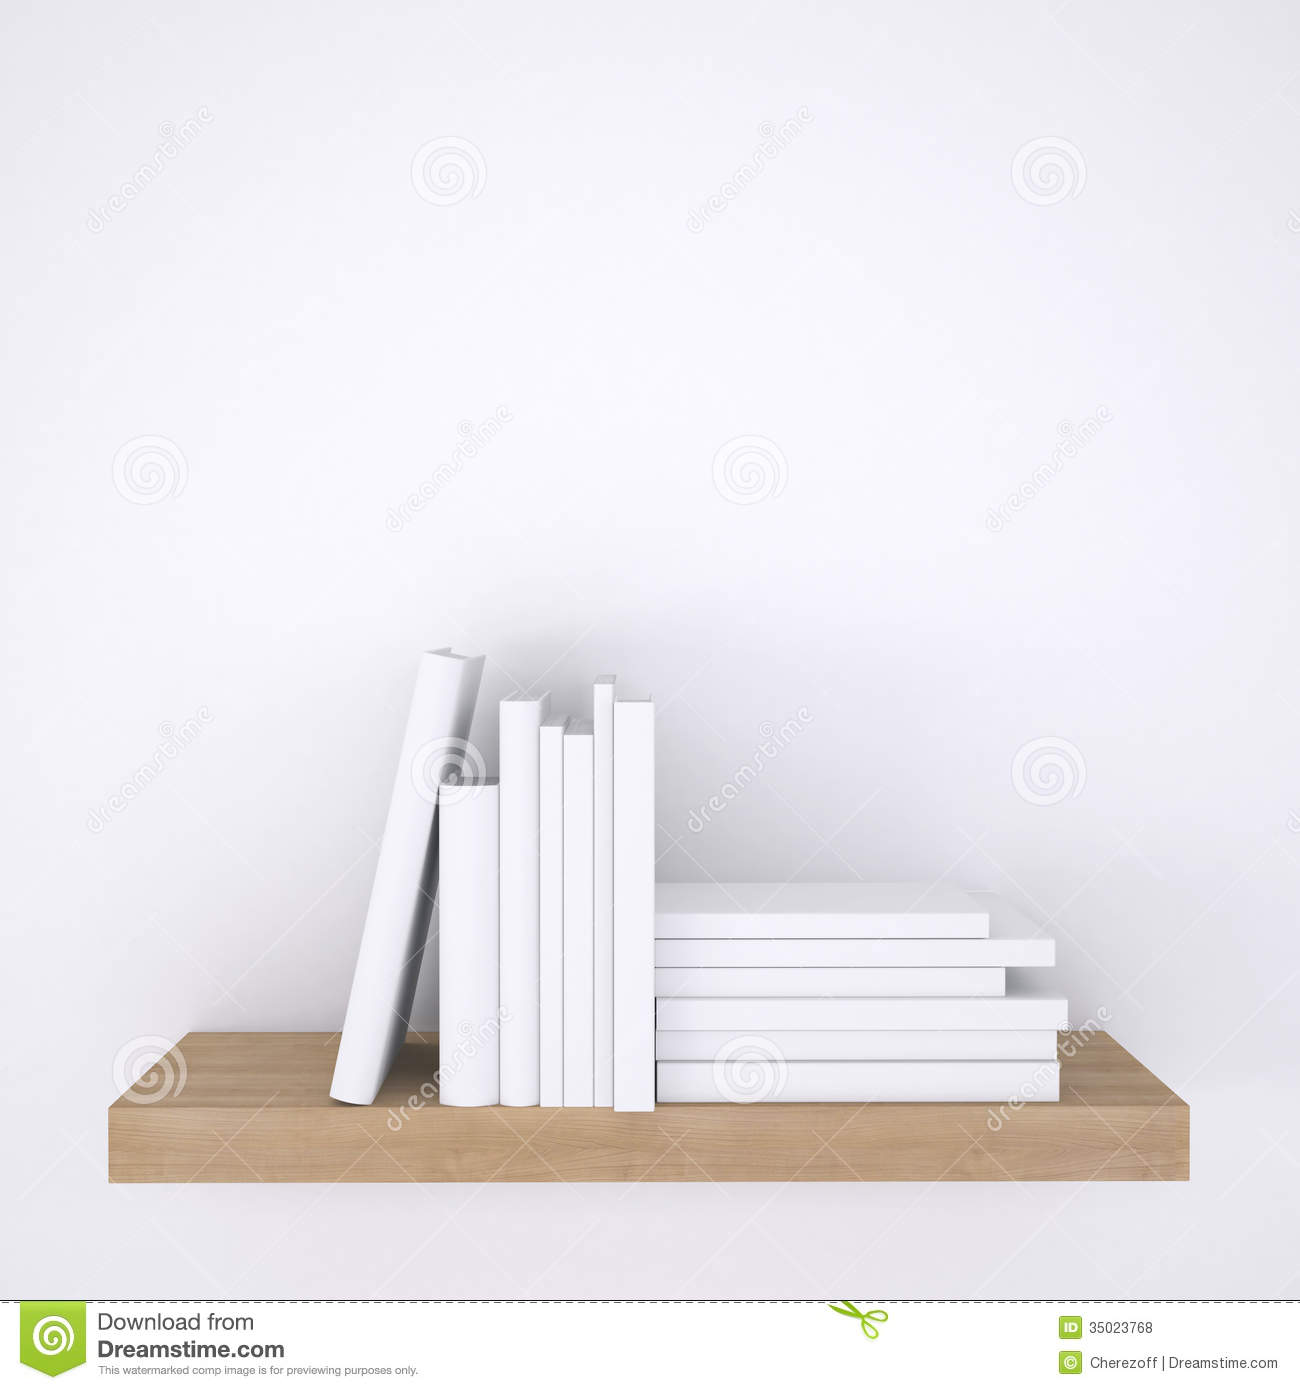 Wooden Shelf With Books On White Wall Background Royalty Free Stock Photos - Image: 35023768